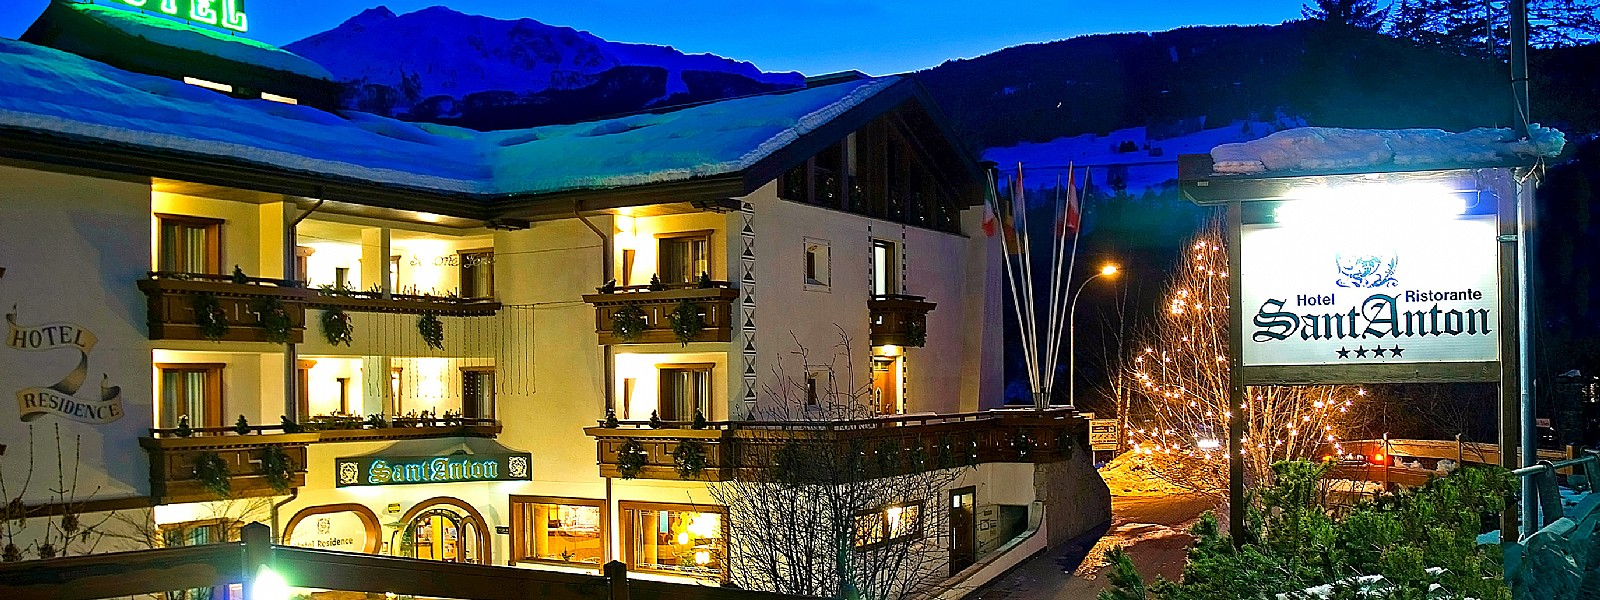 Sant Anton Hotel****| Official Website